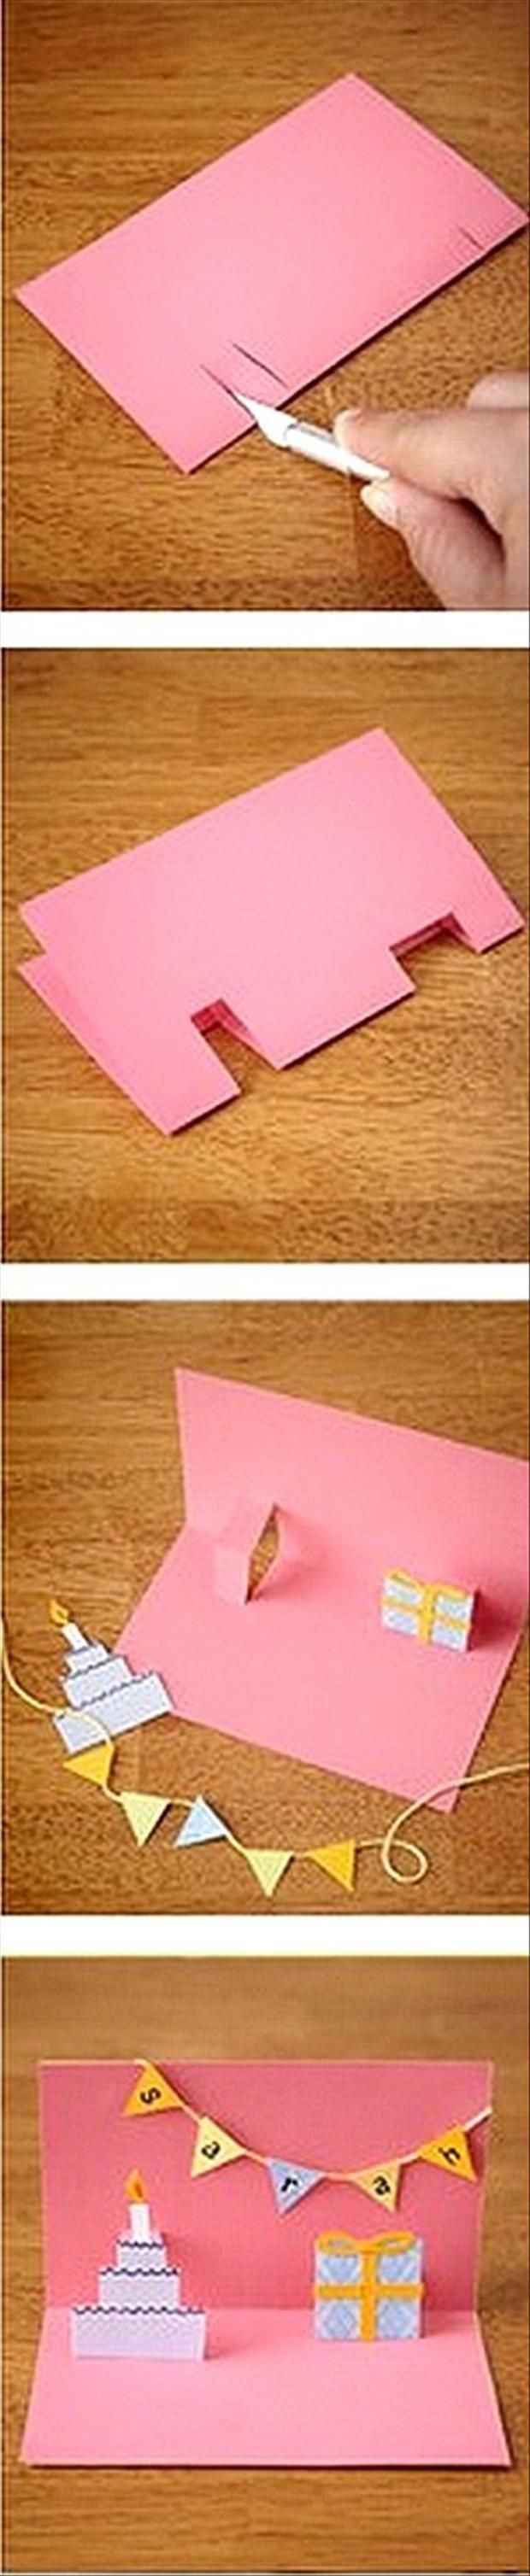 606 Best Cards Measurements Etc Images On Pinterest Folded